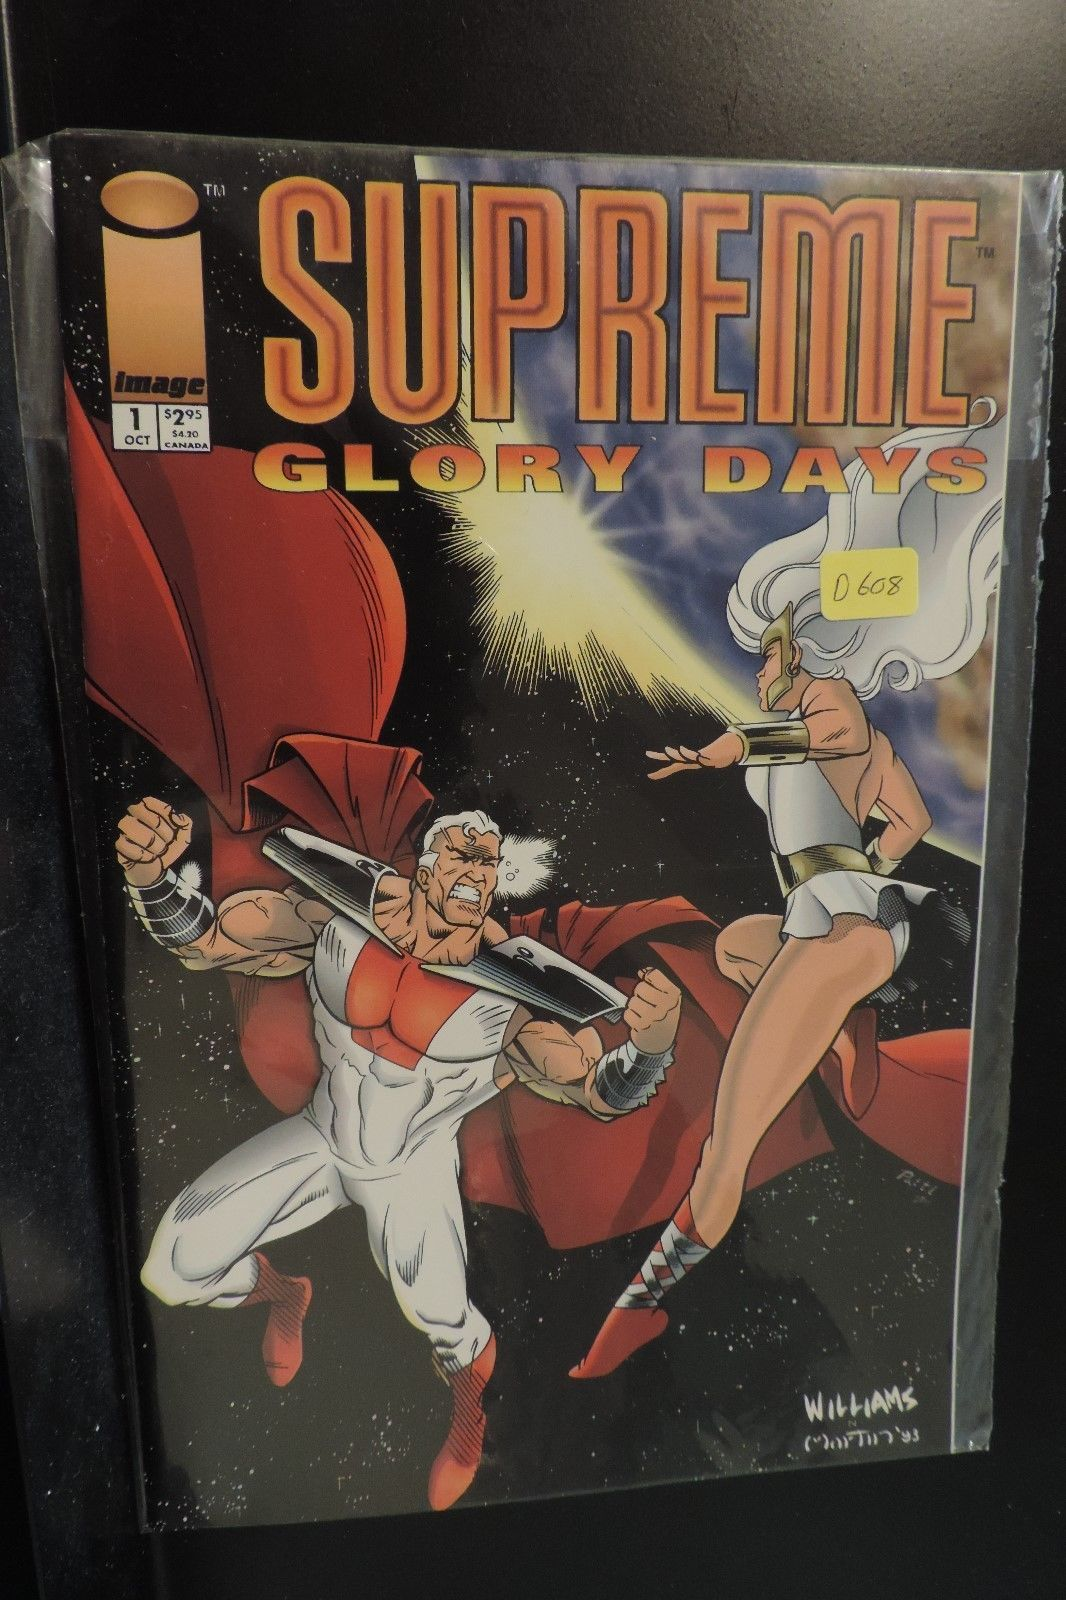 #1 Supreme Glory Days 1993 Image Comic Book D608